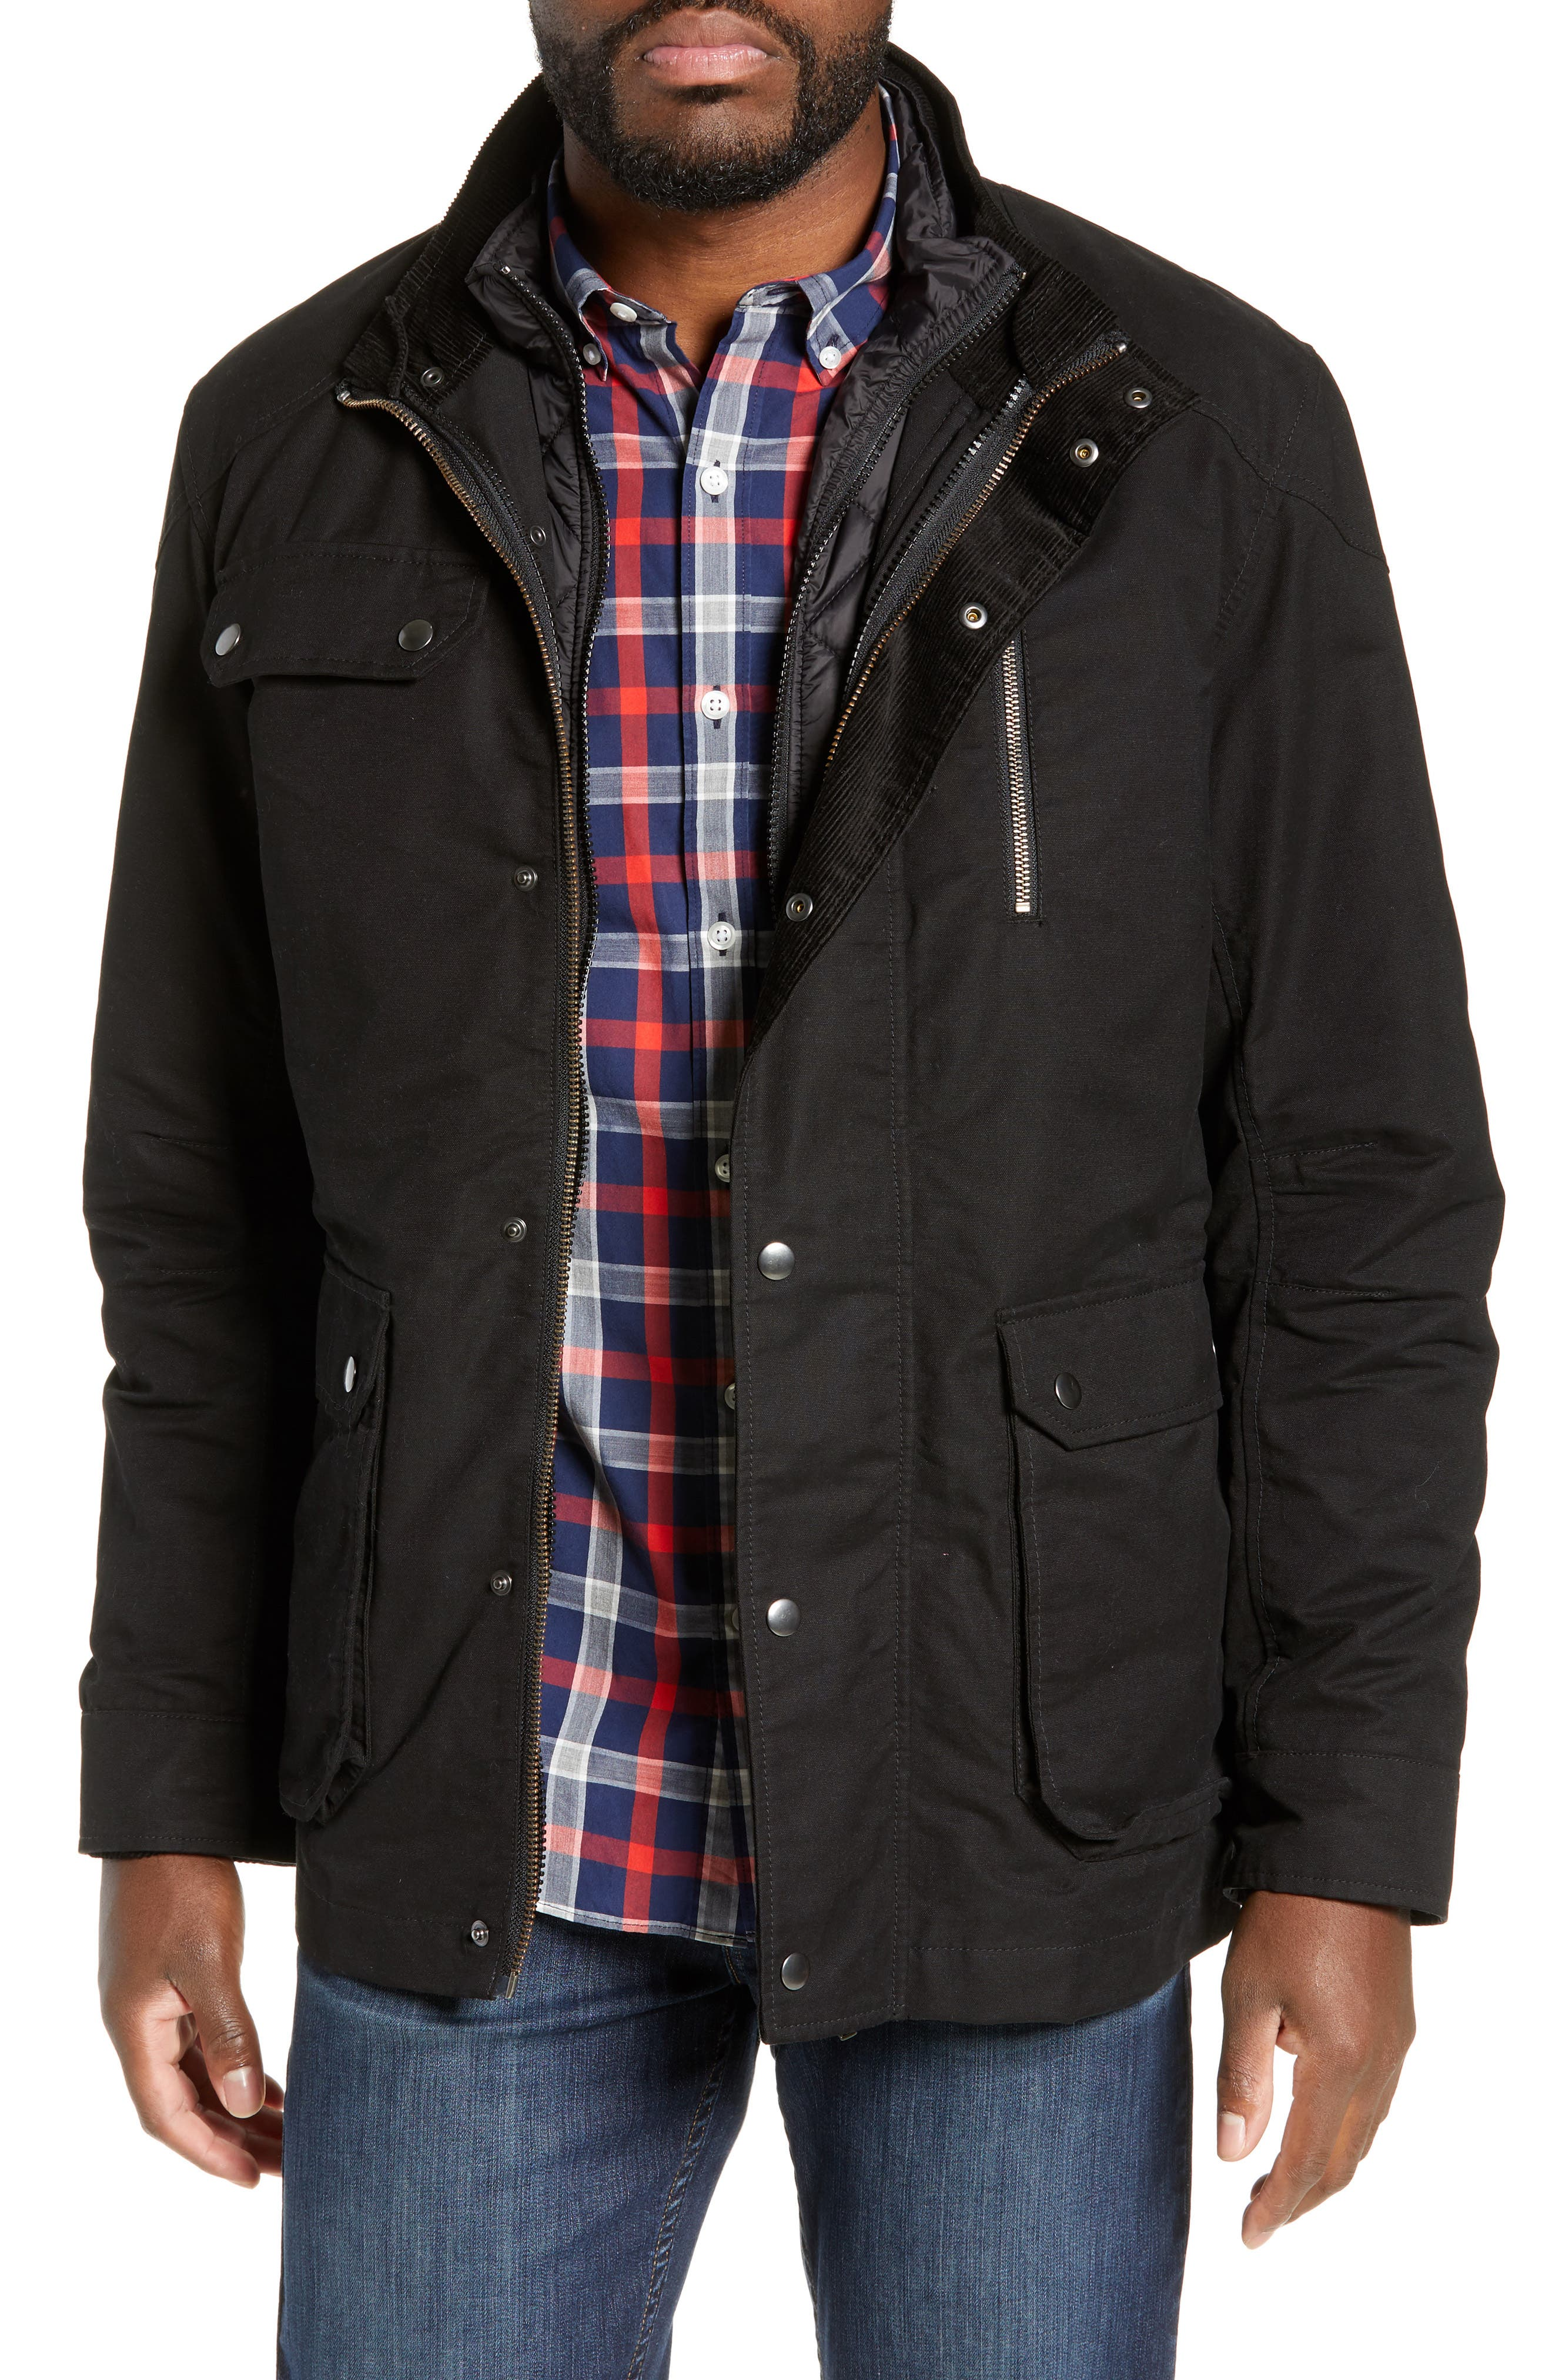 RODD & GUNN, 'Harper' Water Resistant 3-in-1 Waxed Canvas Jacket, Main thumbnail 1, color, ONYX